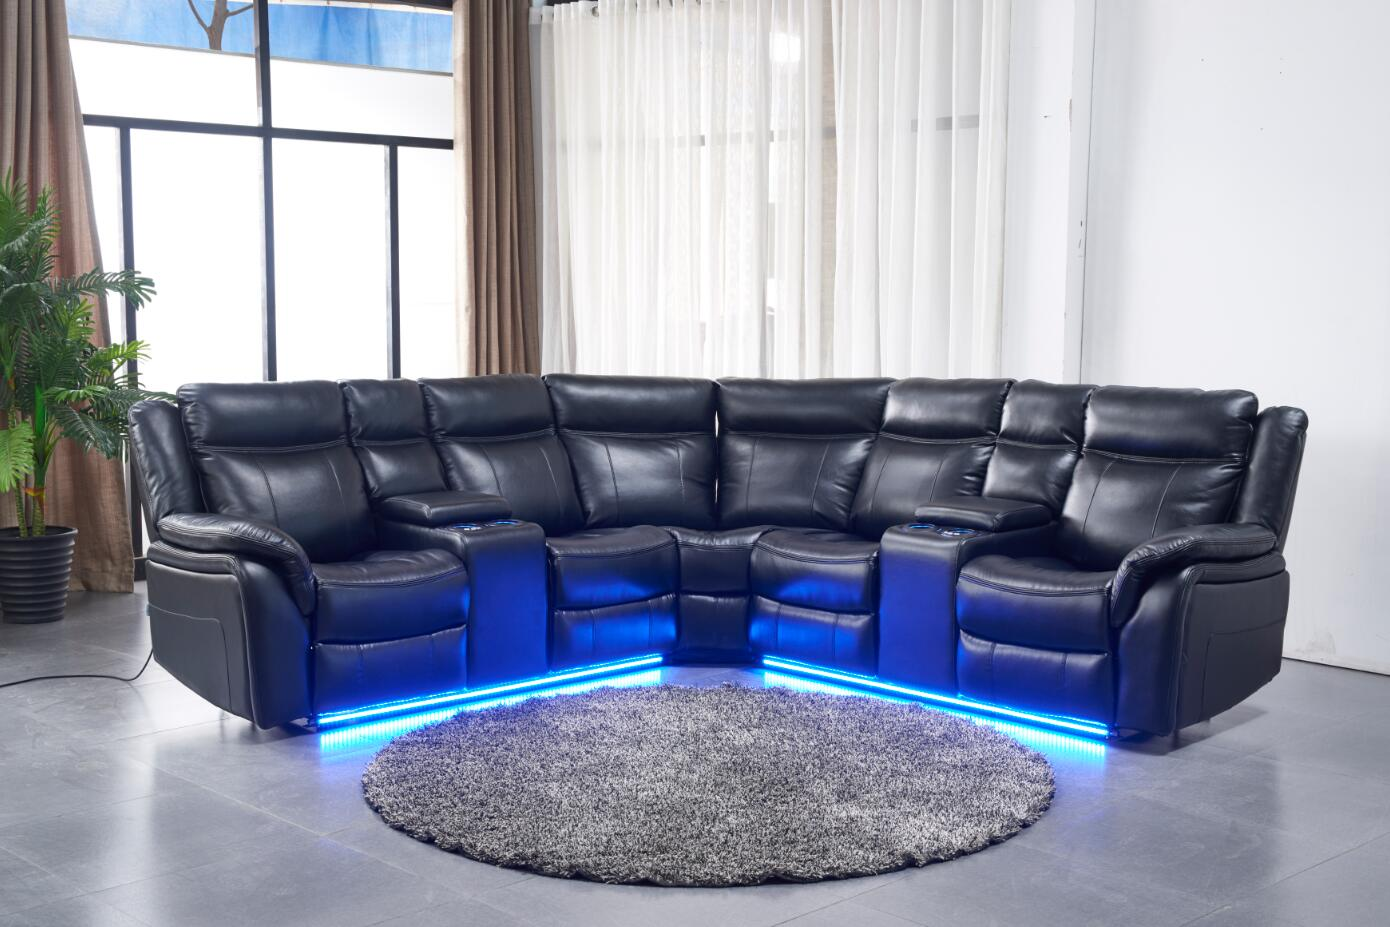 Contemporary Modern Power Motion Recliner Sectional Sofa Set W Usb And Led Lights Black Air Leather Cushion Recliner Loveseats Corner Console Living Room Furniture Walmart Com Walmart Com